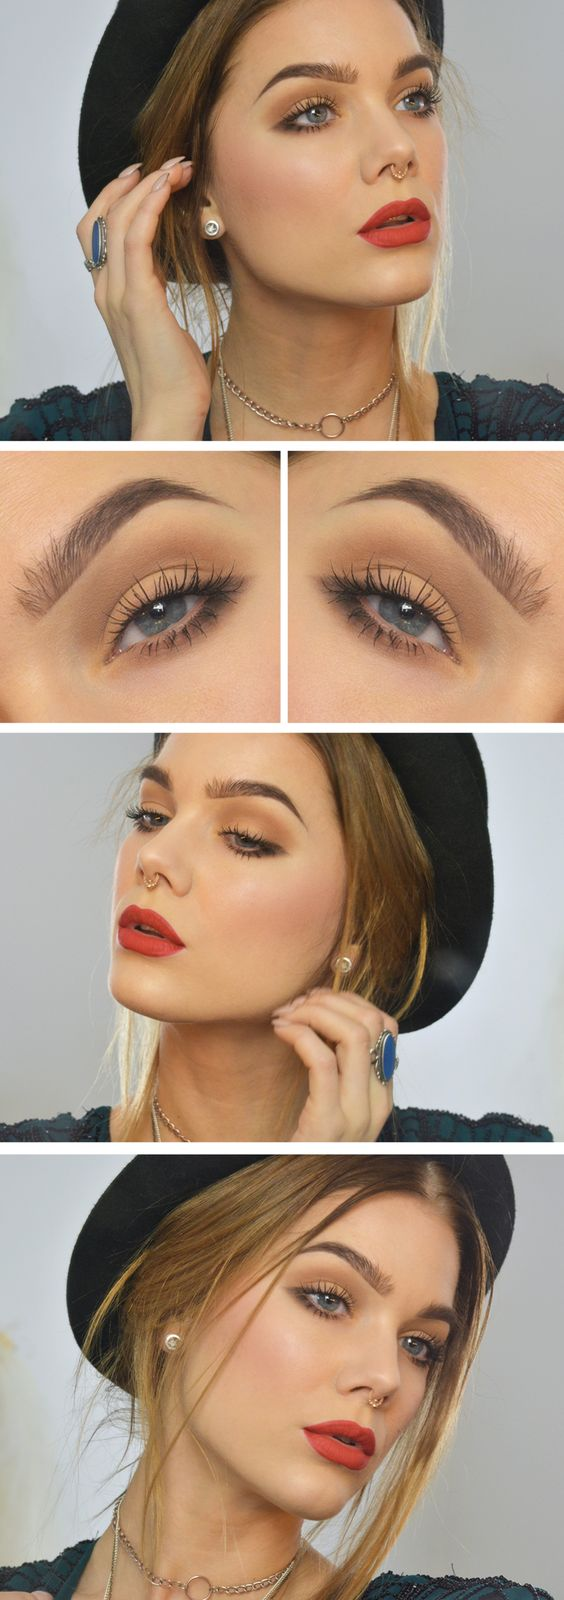 Latest Summer Makeup Ideas & Beauty Tips Cool Looks 2016-2017 (8)